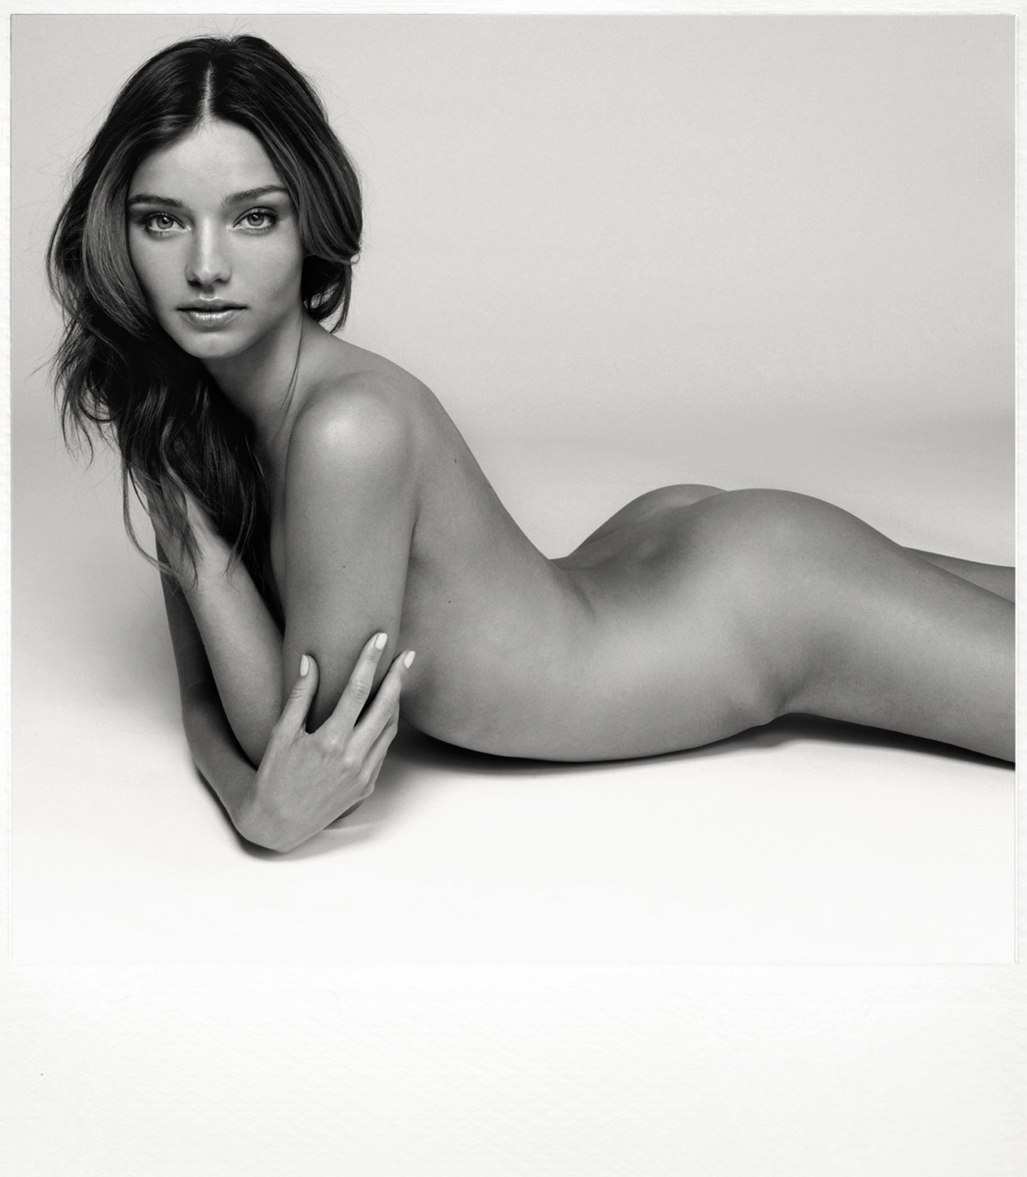 Miranda Kerr / Миранда Керр, фотограф Chris Colls